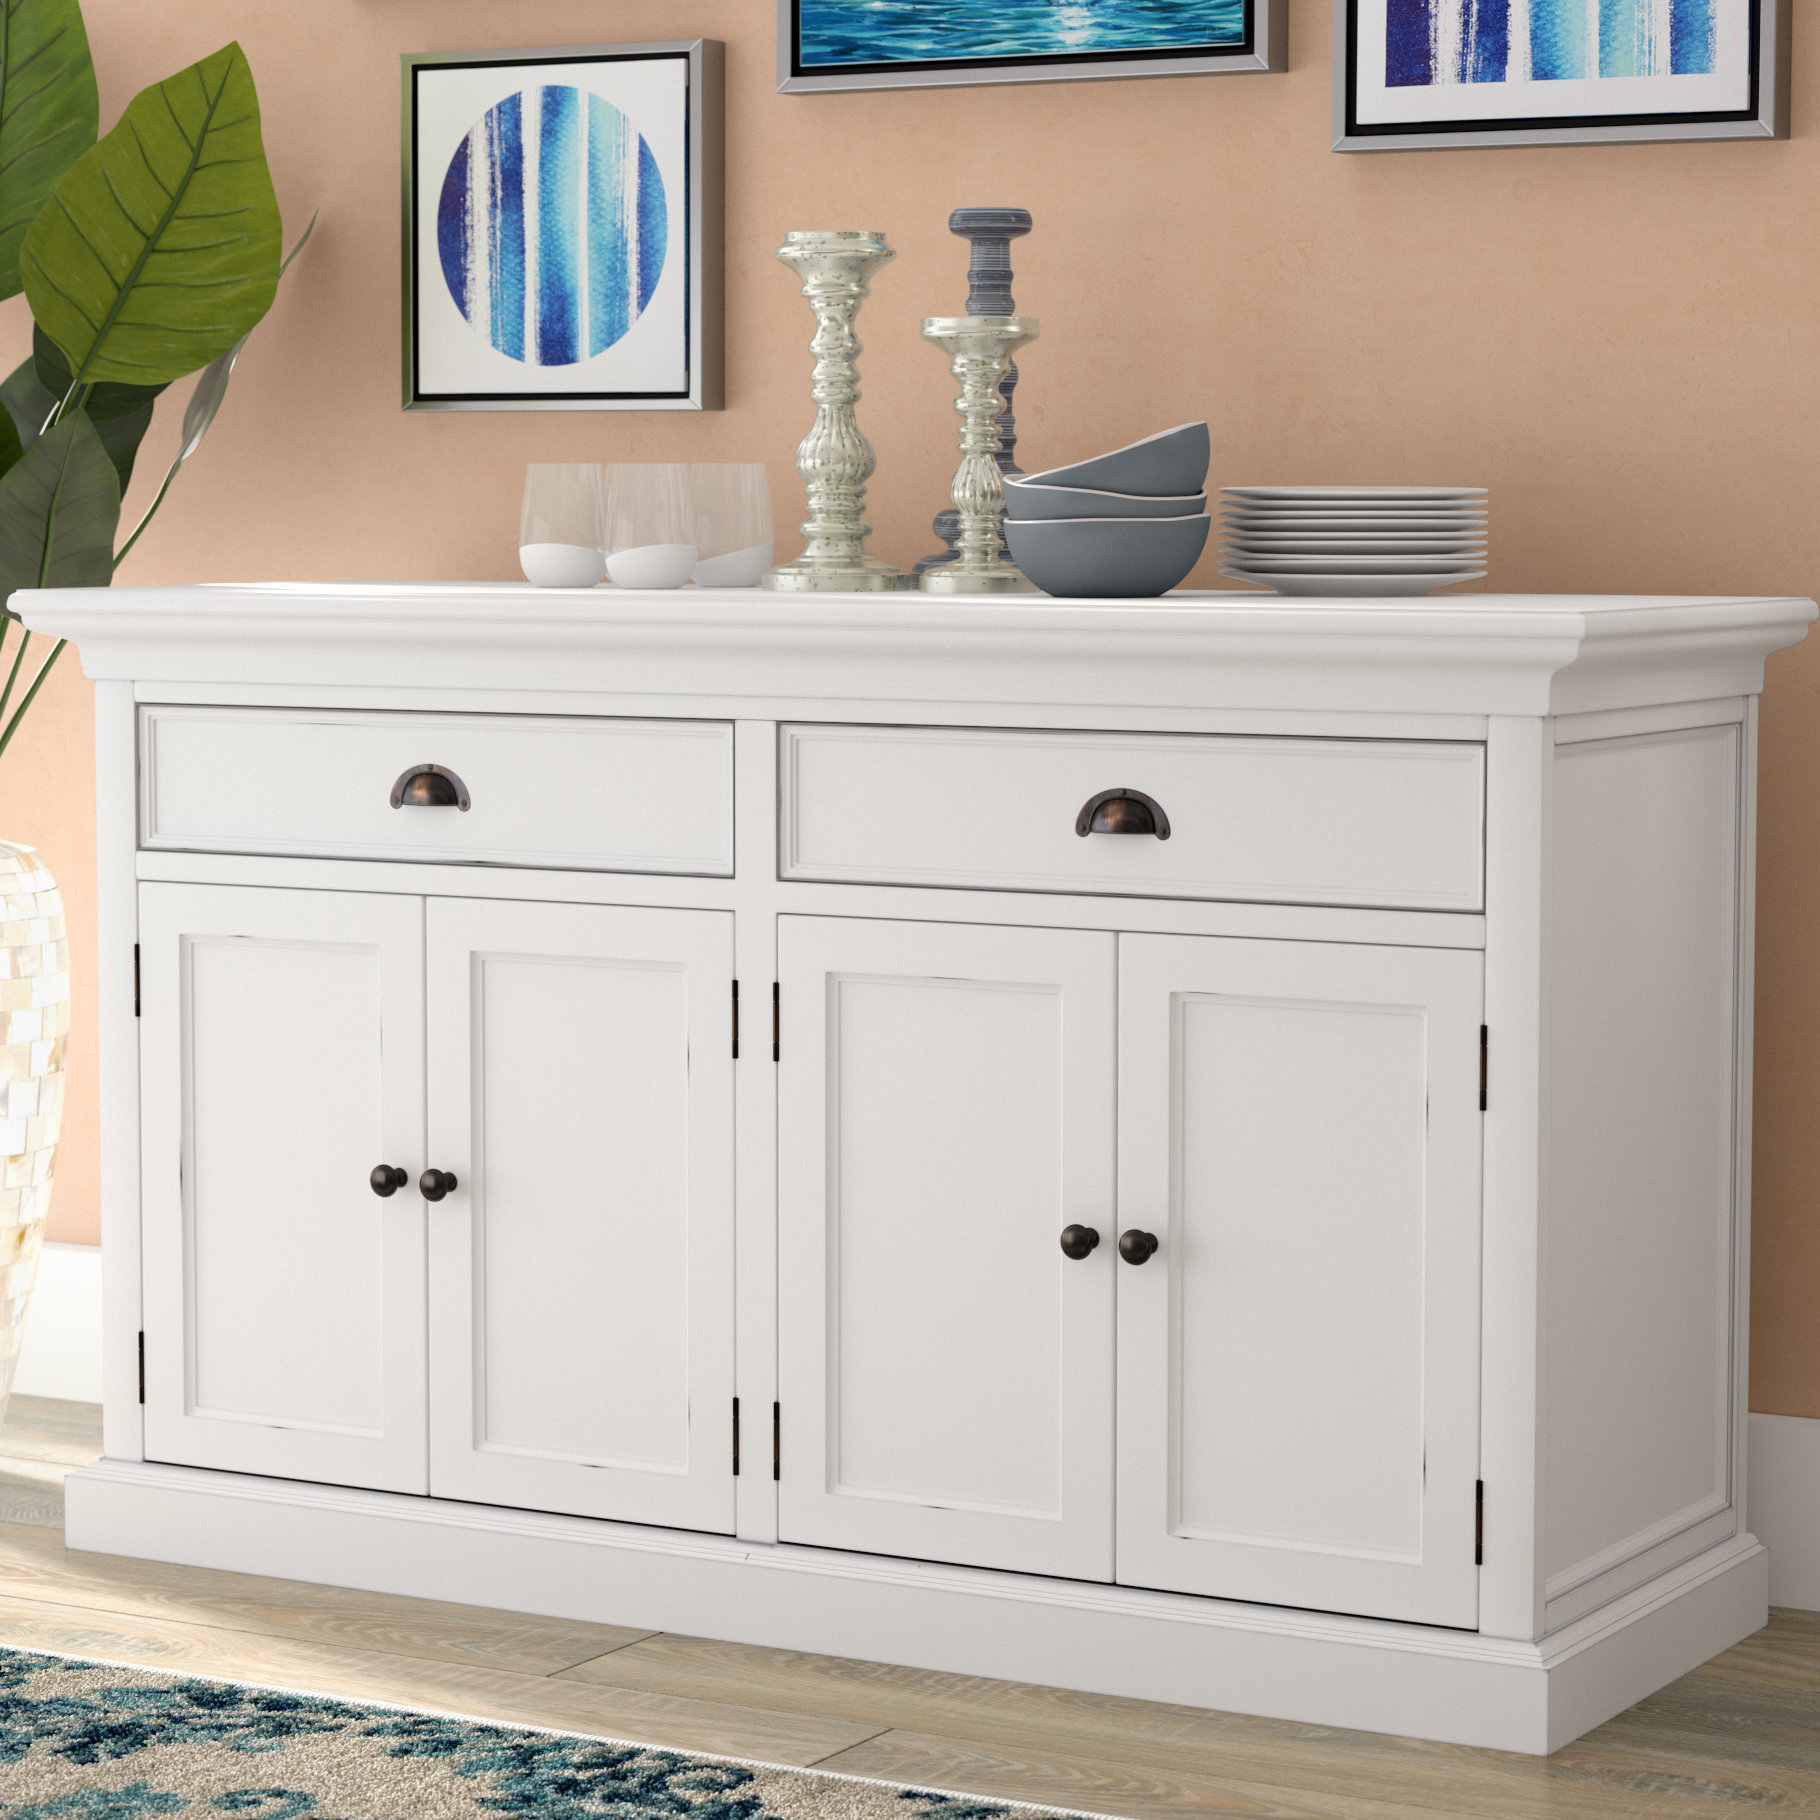 Beachcrest Home Amityville Wood Sideboard & Reviews | Wayfair Throughout 2018 Raunds Sideboards (View 15 of 20)